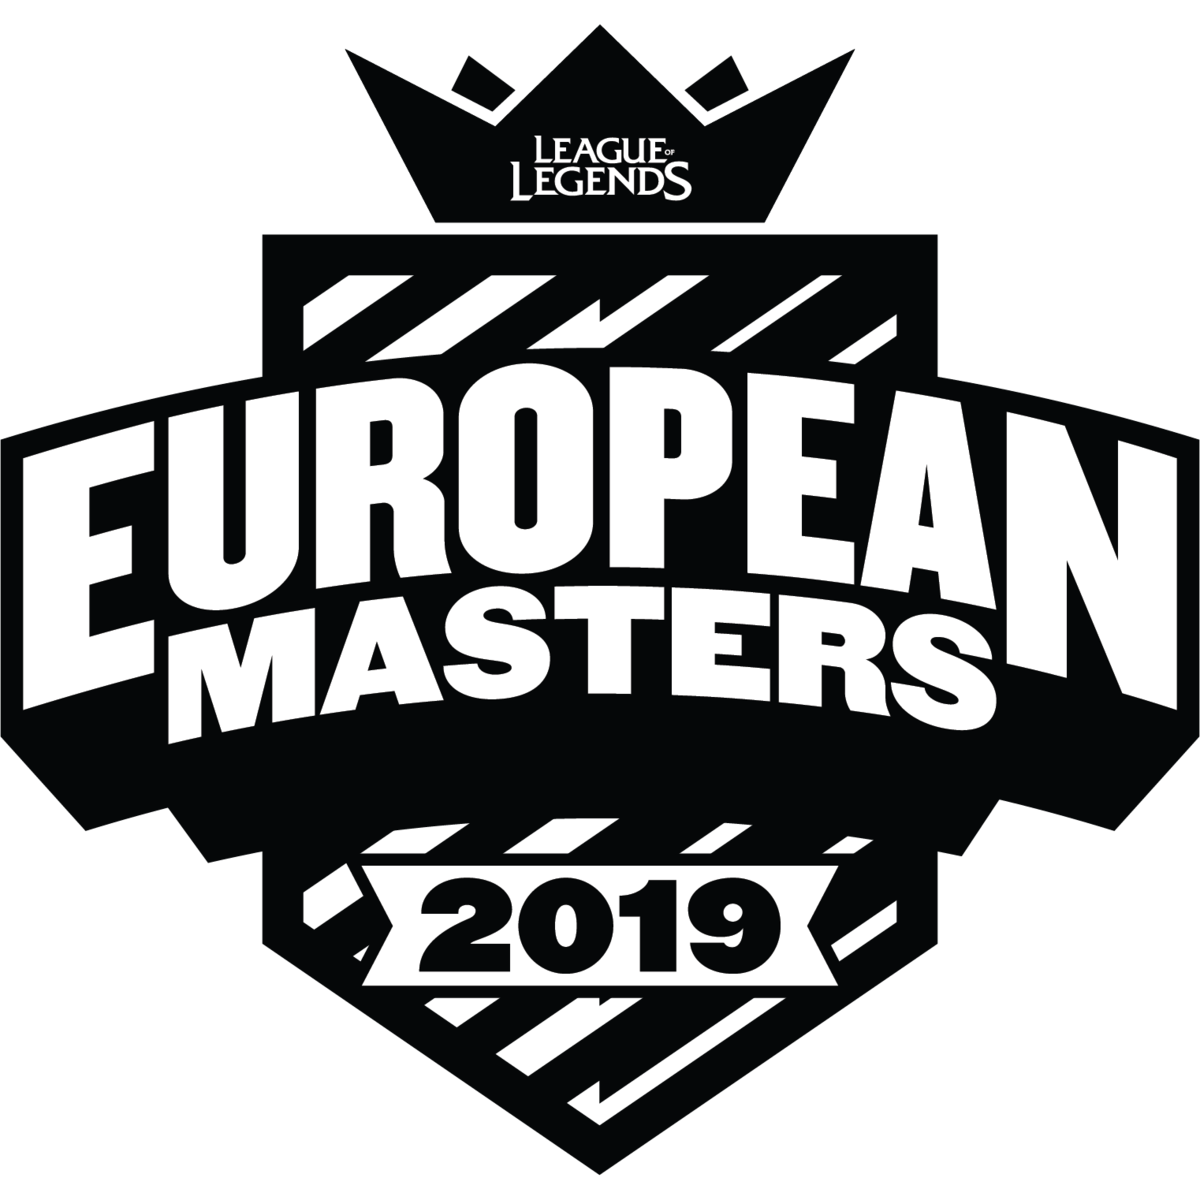 European Masters Spring 2019 - Knockout Stage